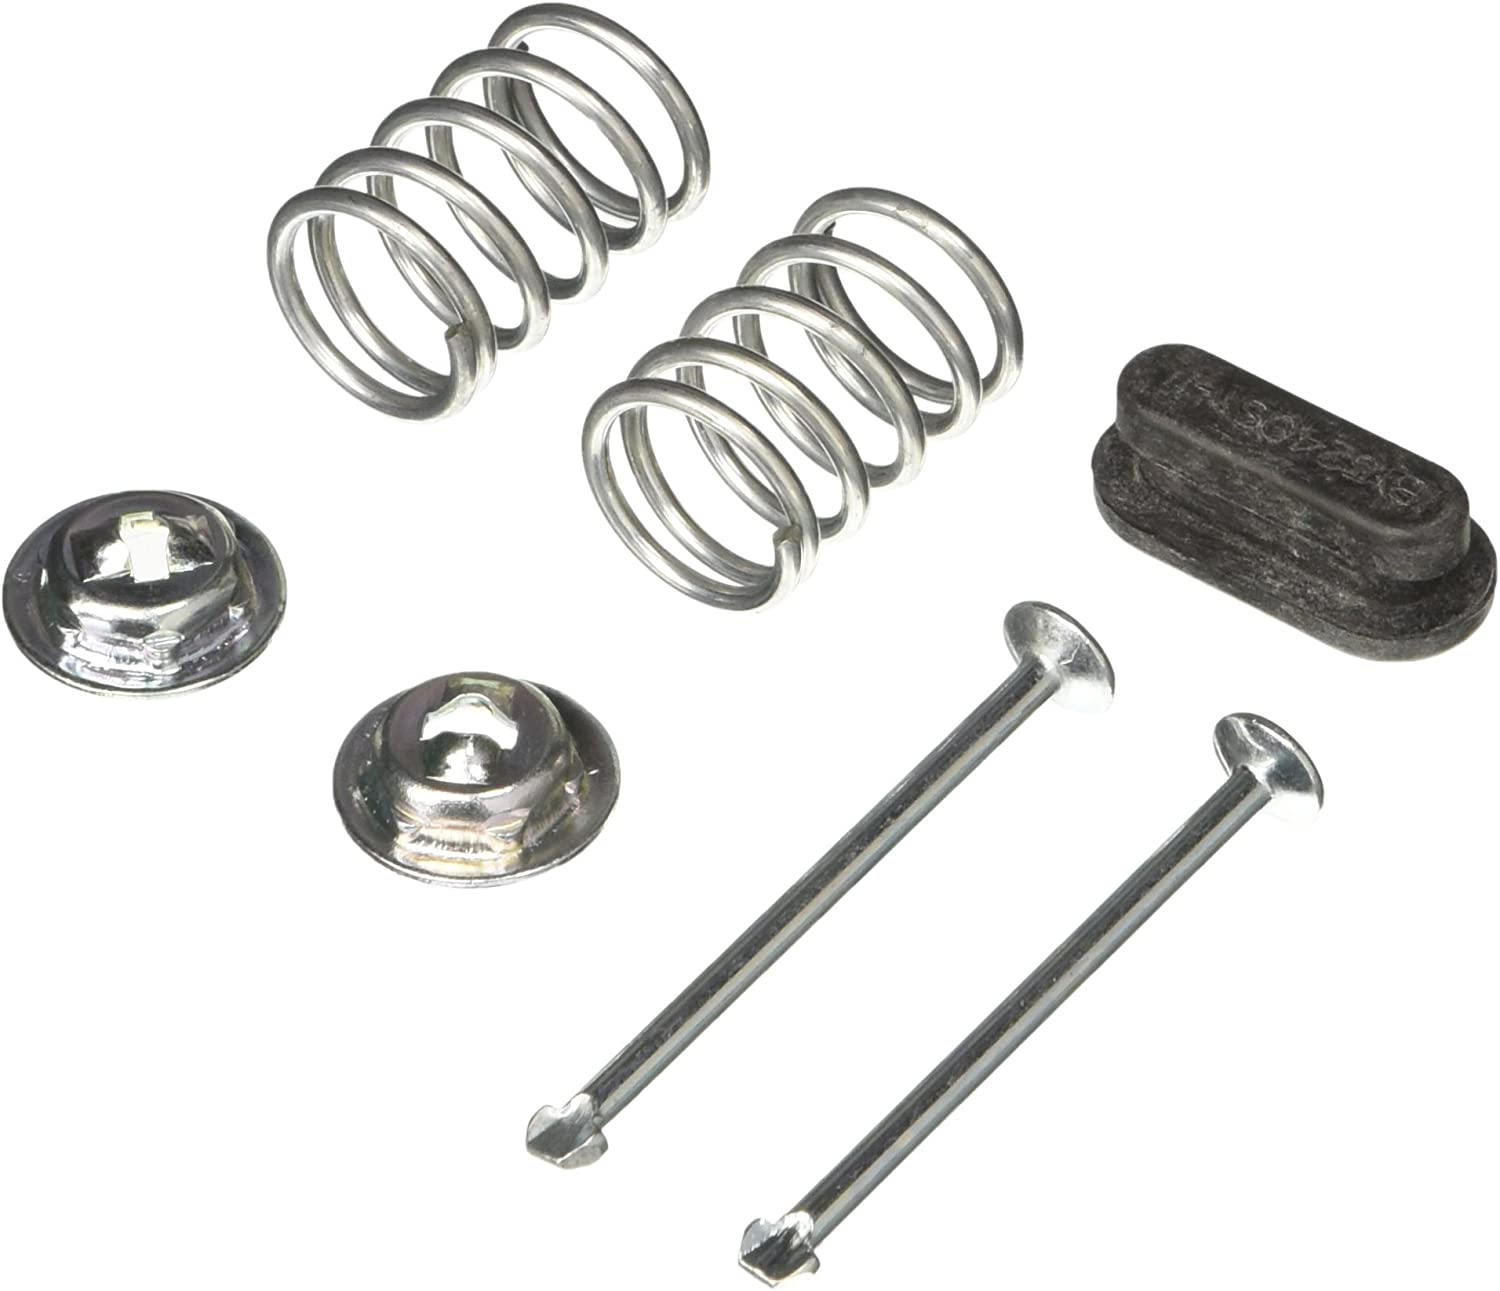 NEW Carlson Quality Brake Parts Kit Sale SALE% OFF Hold H4083-2 Down